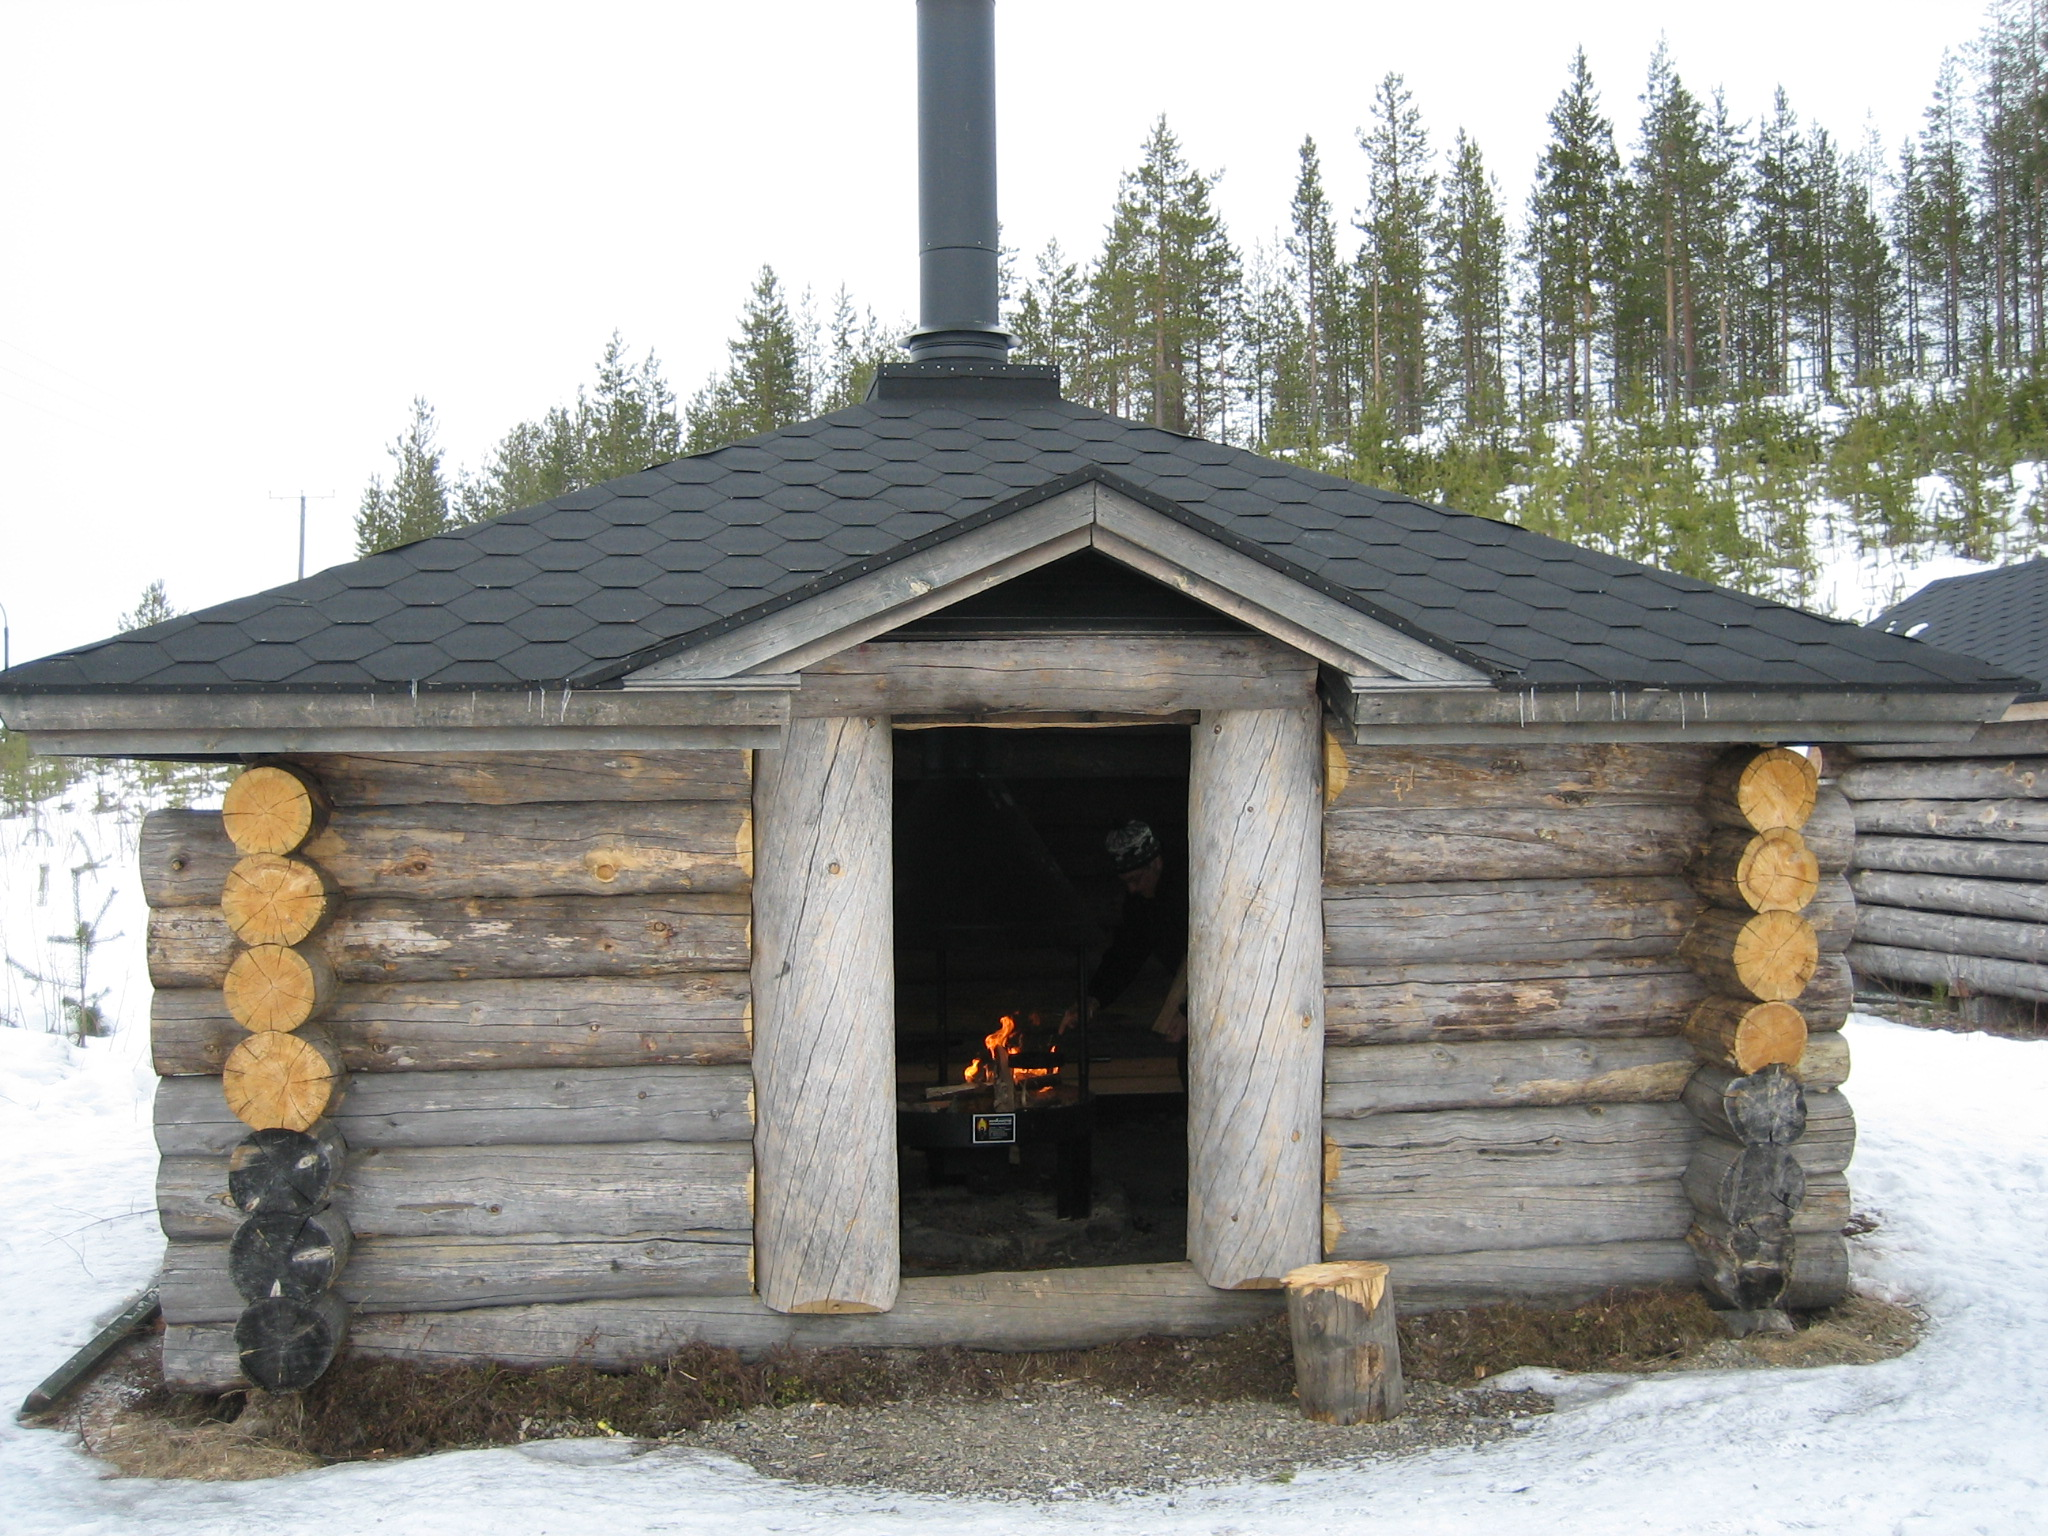 Kinds Of Shelters : Hiking in lapland and shelters for staying overnight